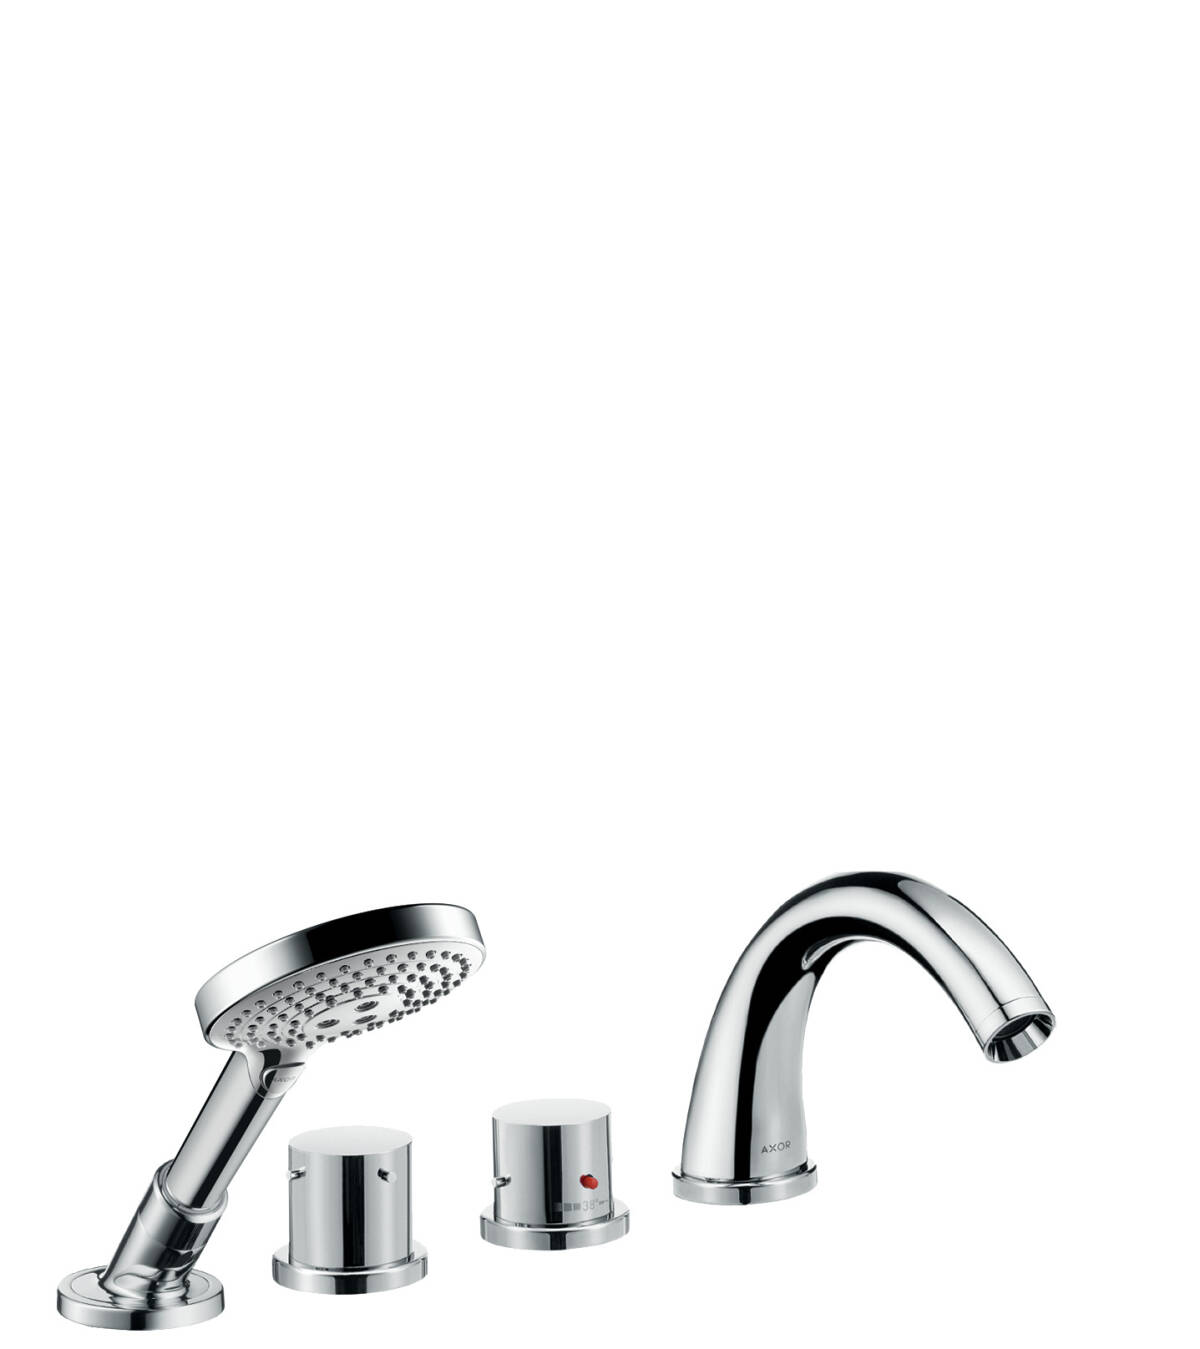 4-hole tile mounted thermostatic bath mixer with zero handles, Brushed Black Chrome, 10466340